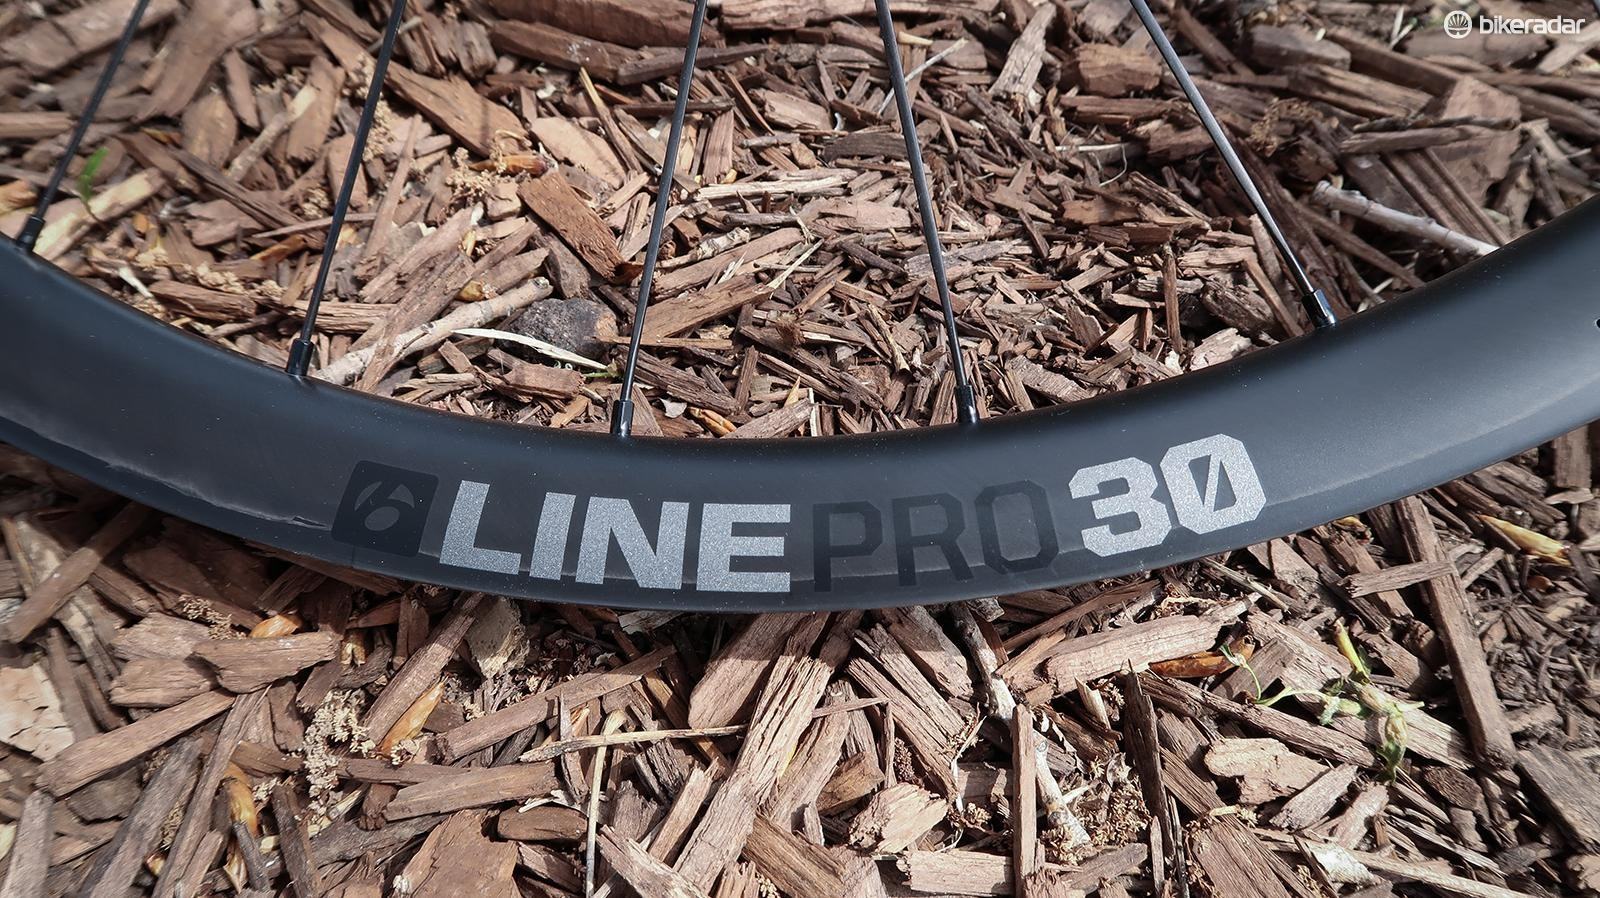 The Bontrager Line Pro 30 wheelset